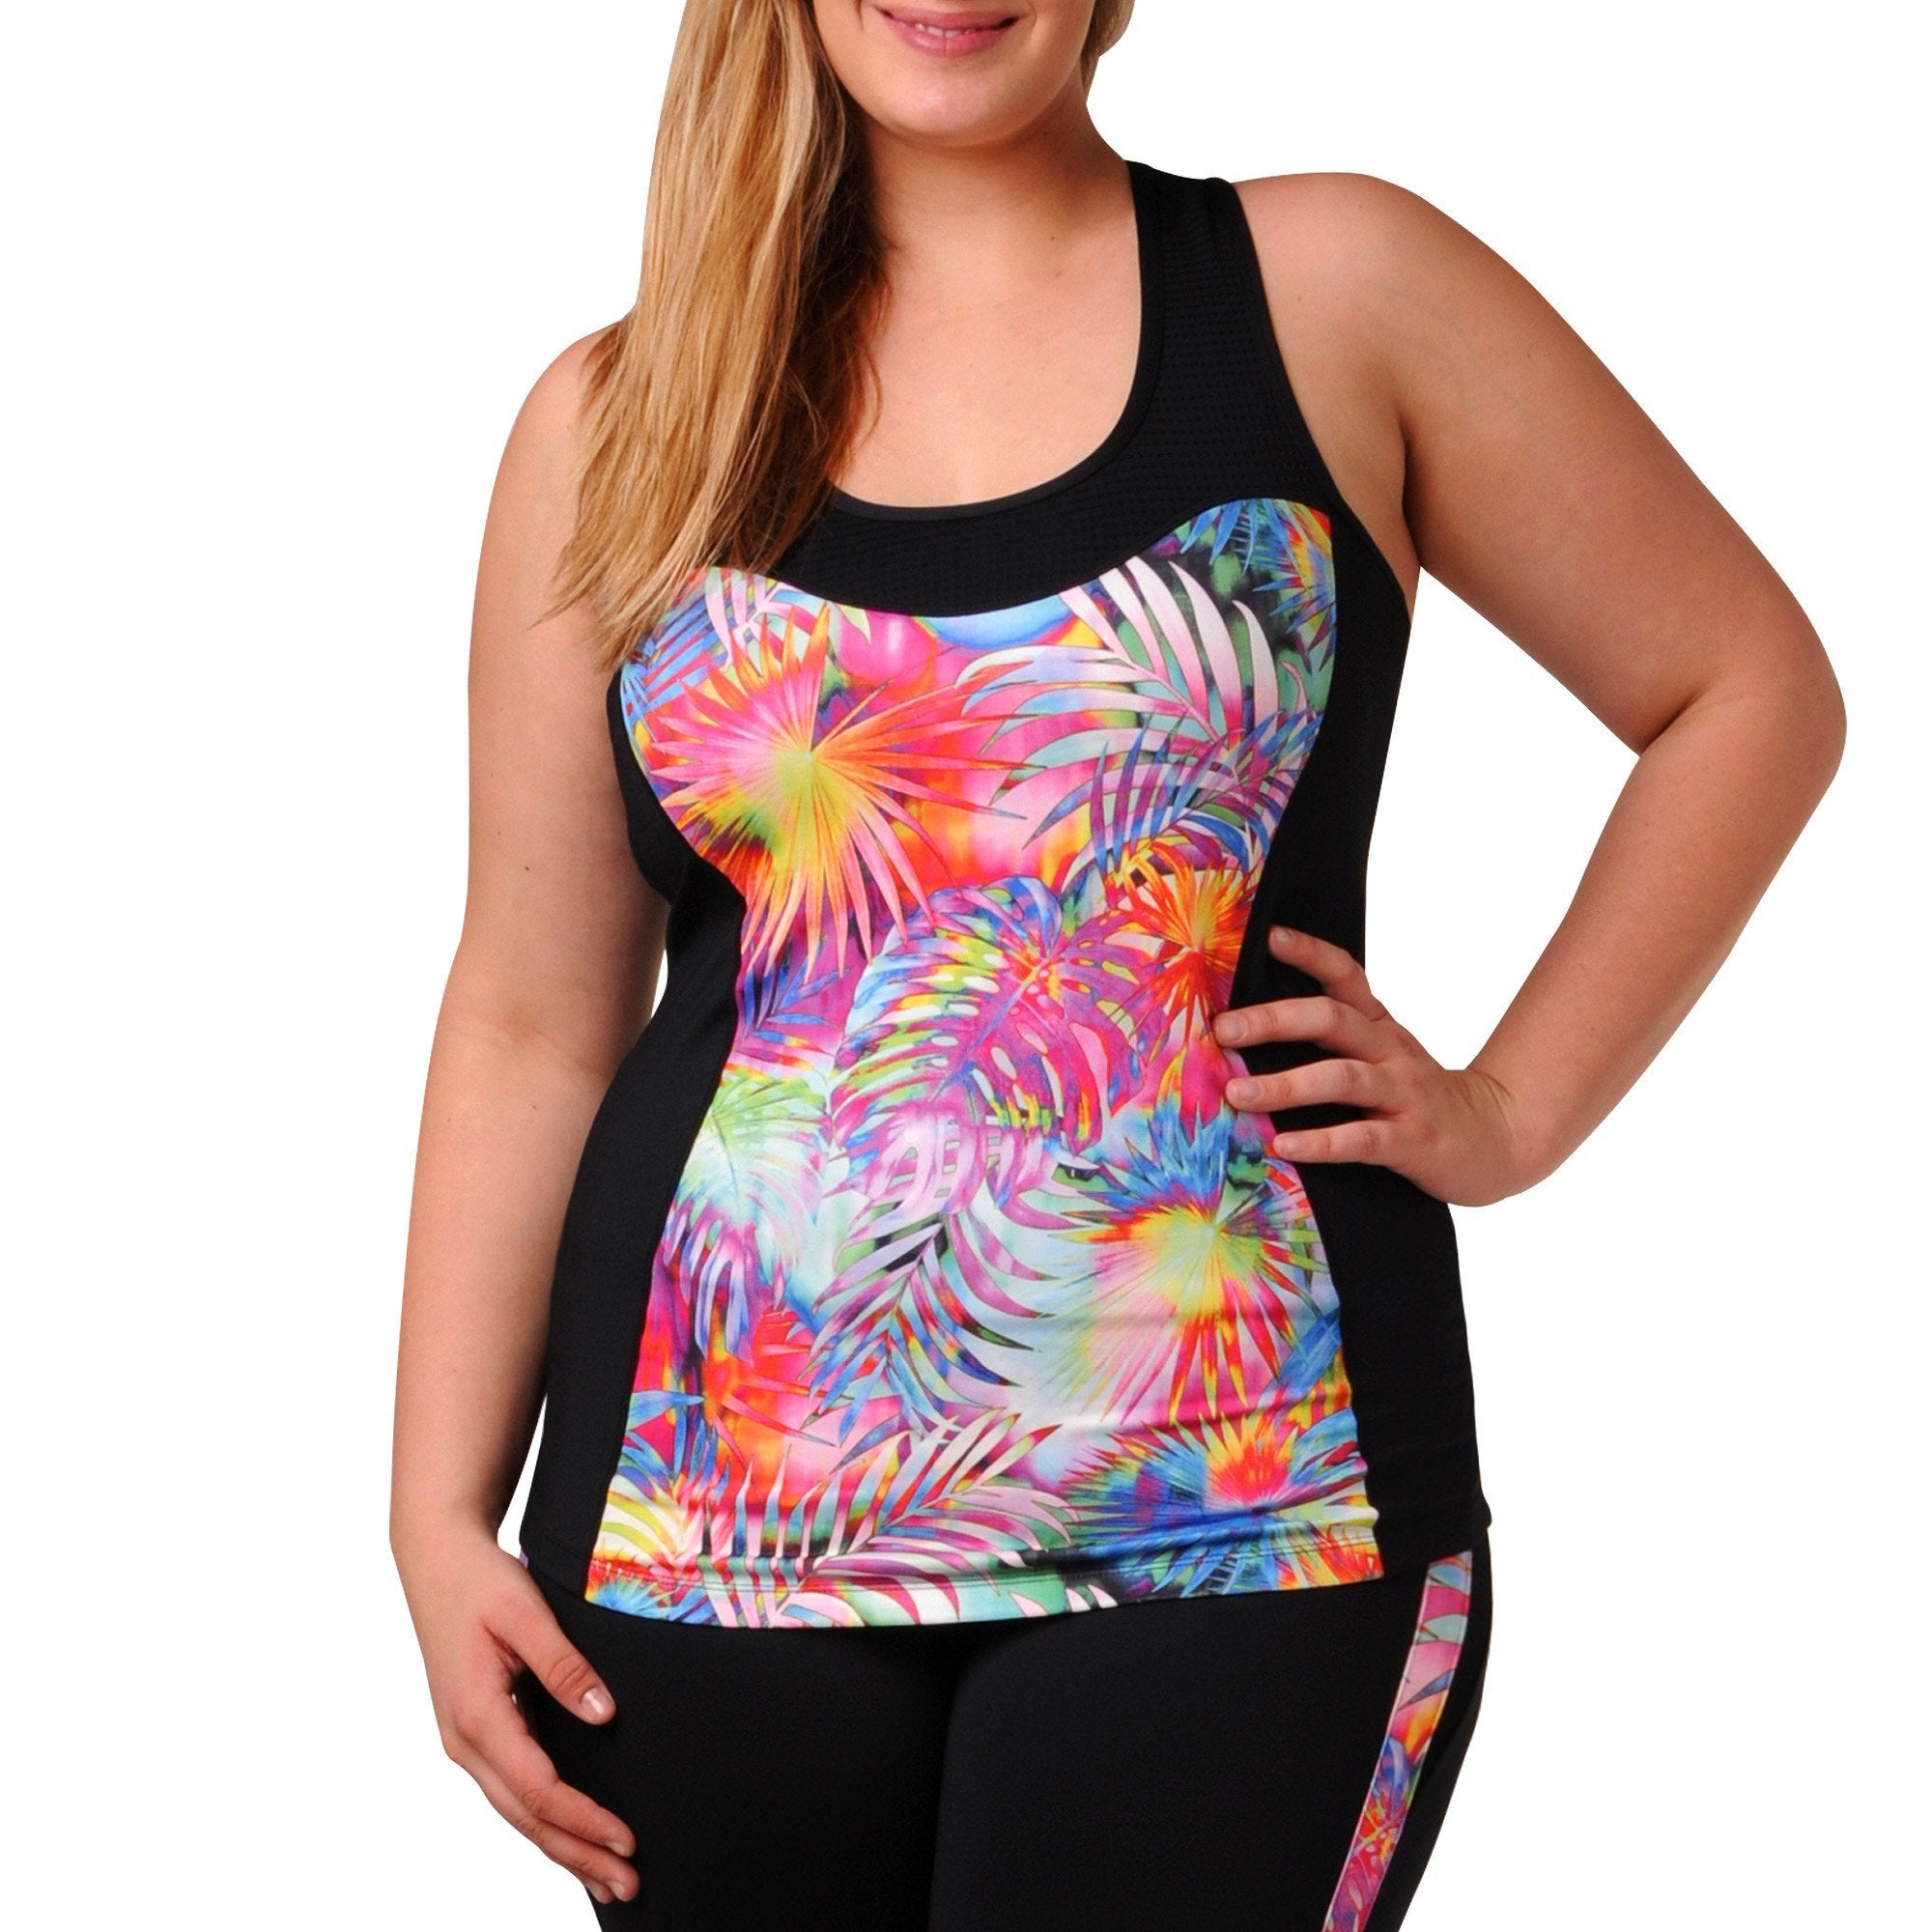 Addison Print Tank w/ Bra - Rainbeau Curves, 14/16 / Tropical Print, activewear, athleisure, fitness, workout, gym, performance, womens, ladies, plus size, curvy, full figured, spandex, cotton, polyester - 1